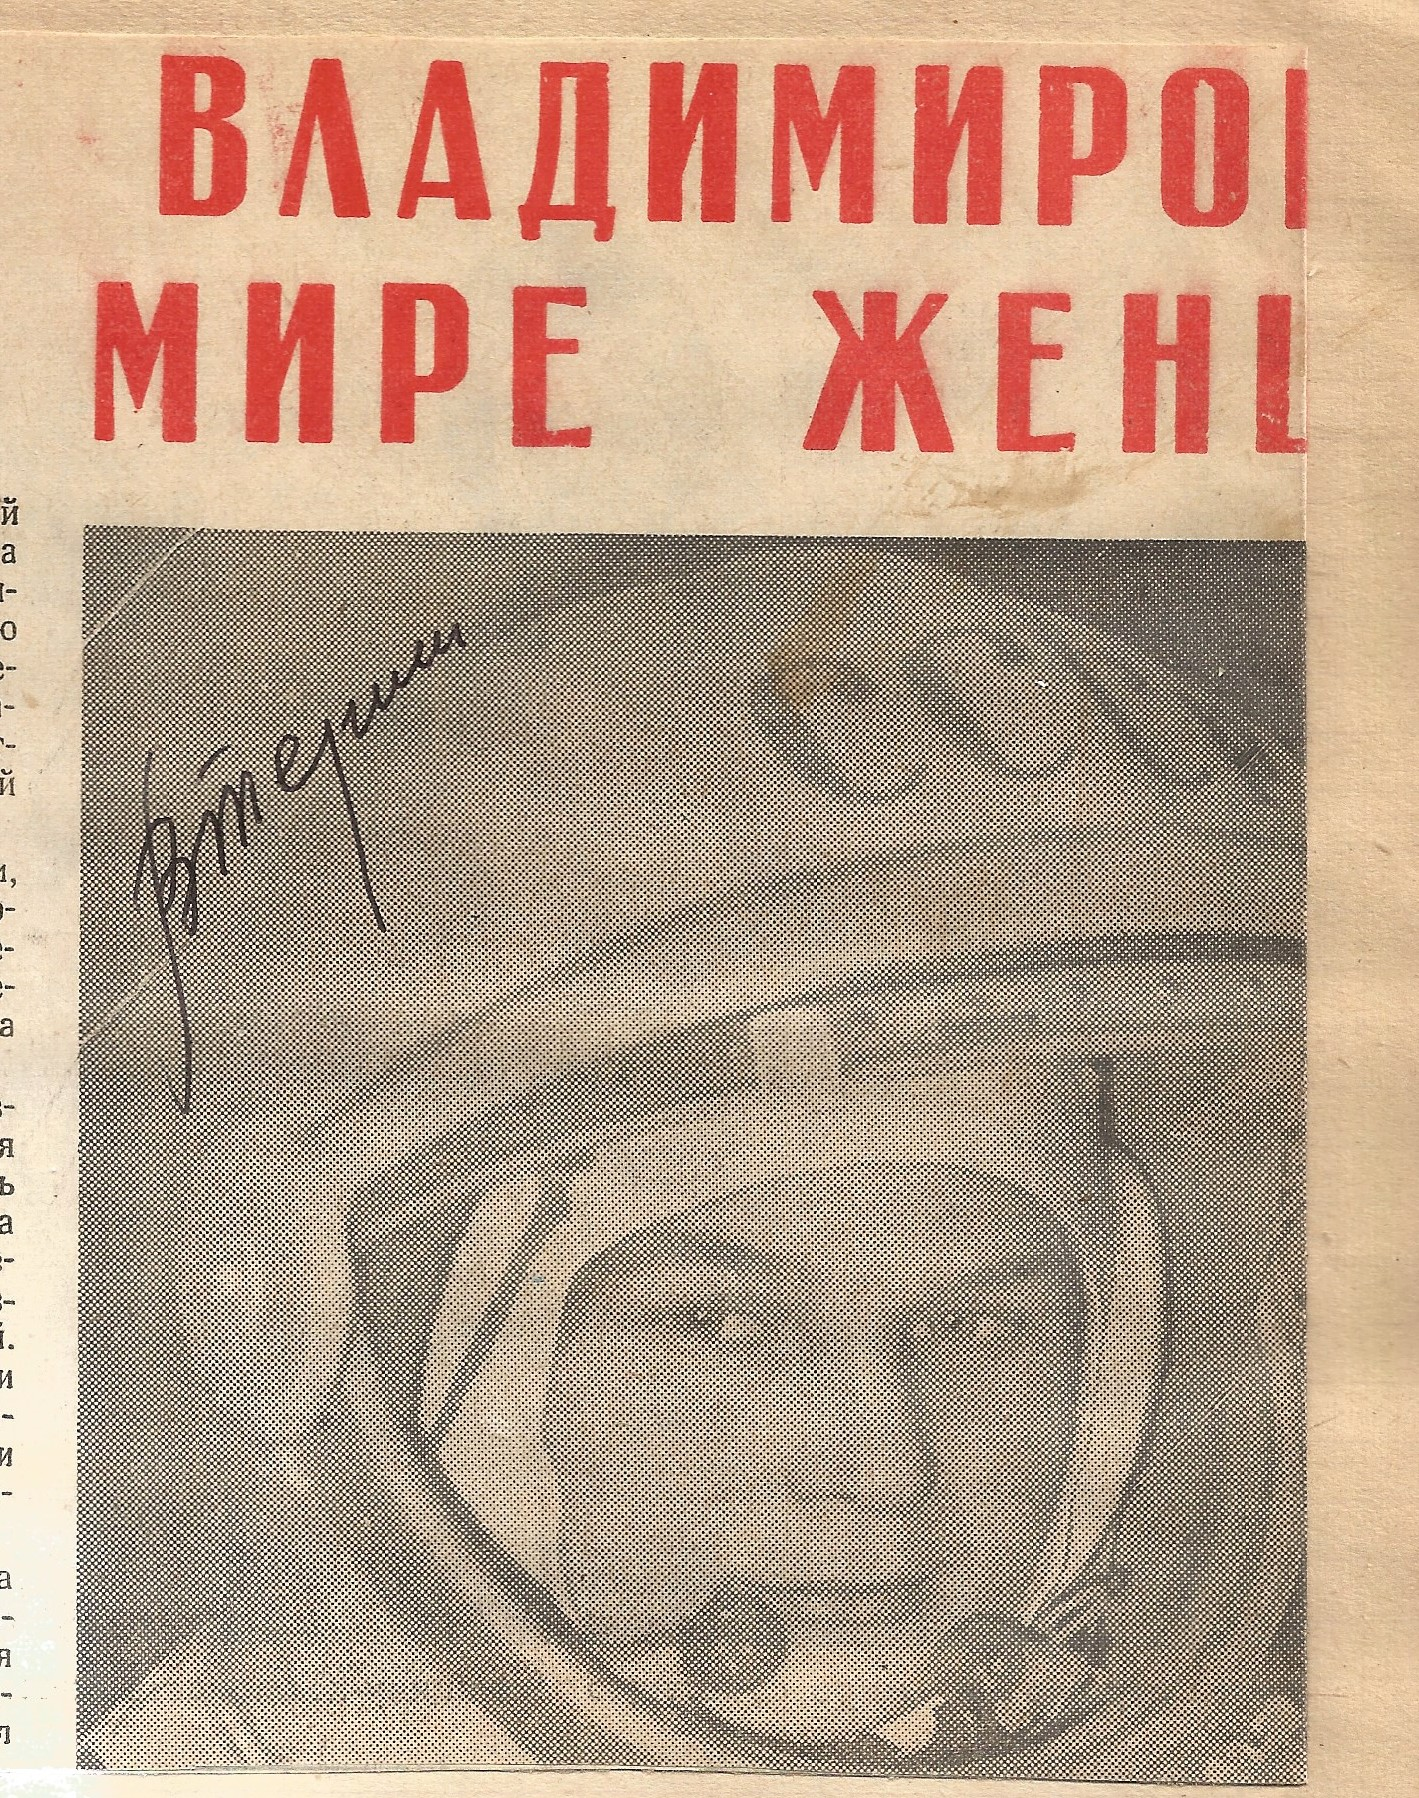 1950/60s Russian Cosmonauts multiple signed hard backed scrapbook compiled by a worker at Baikonur - Image 16 of 22